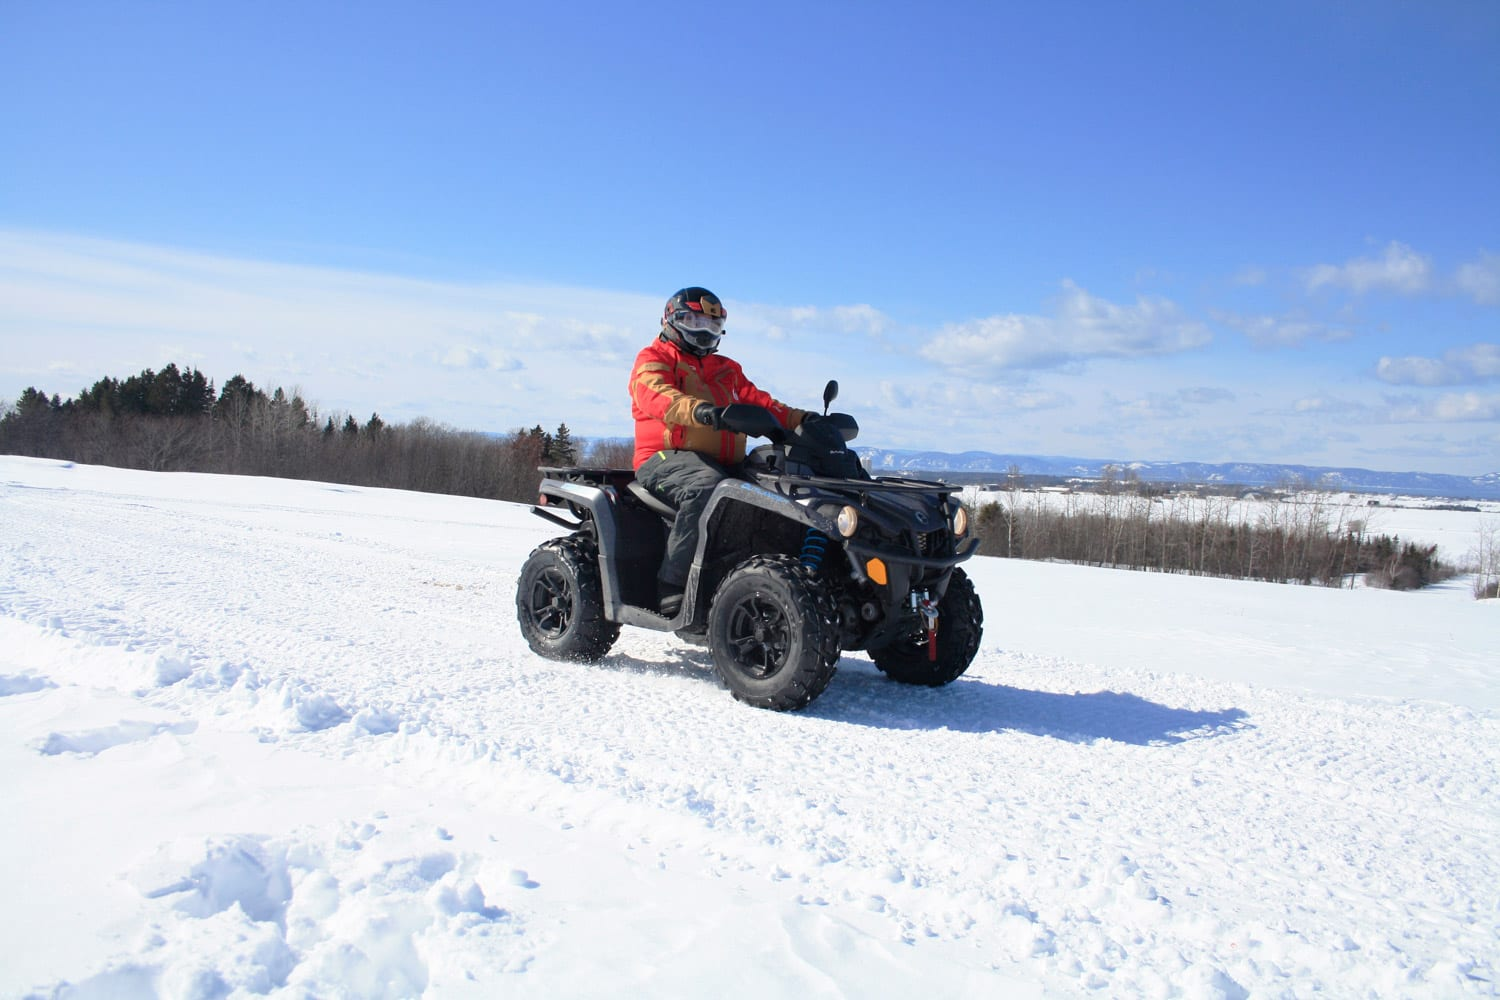 2020 Can-Am Outlander 570 XT Review